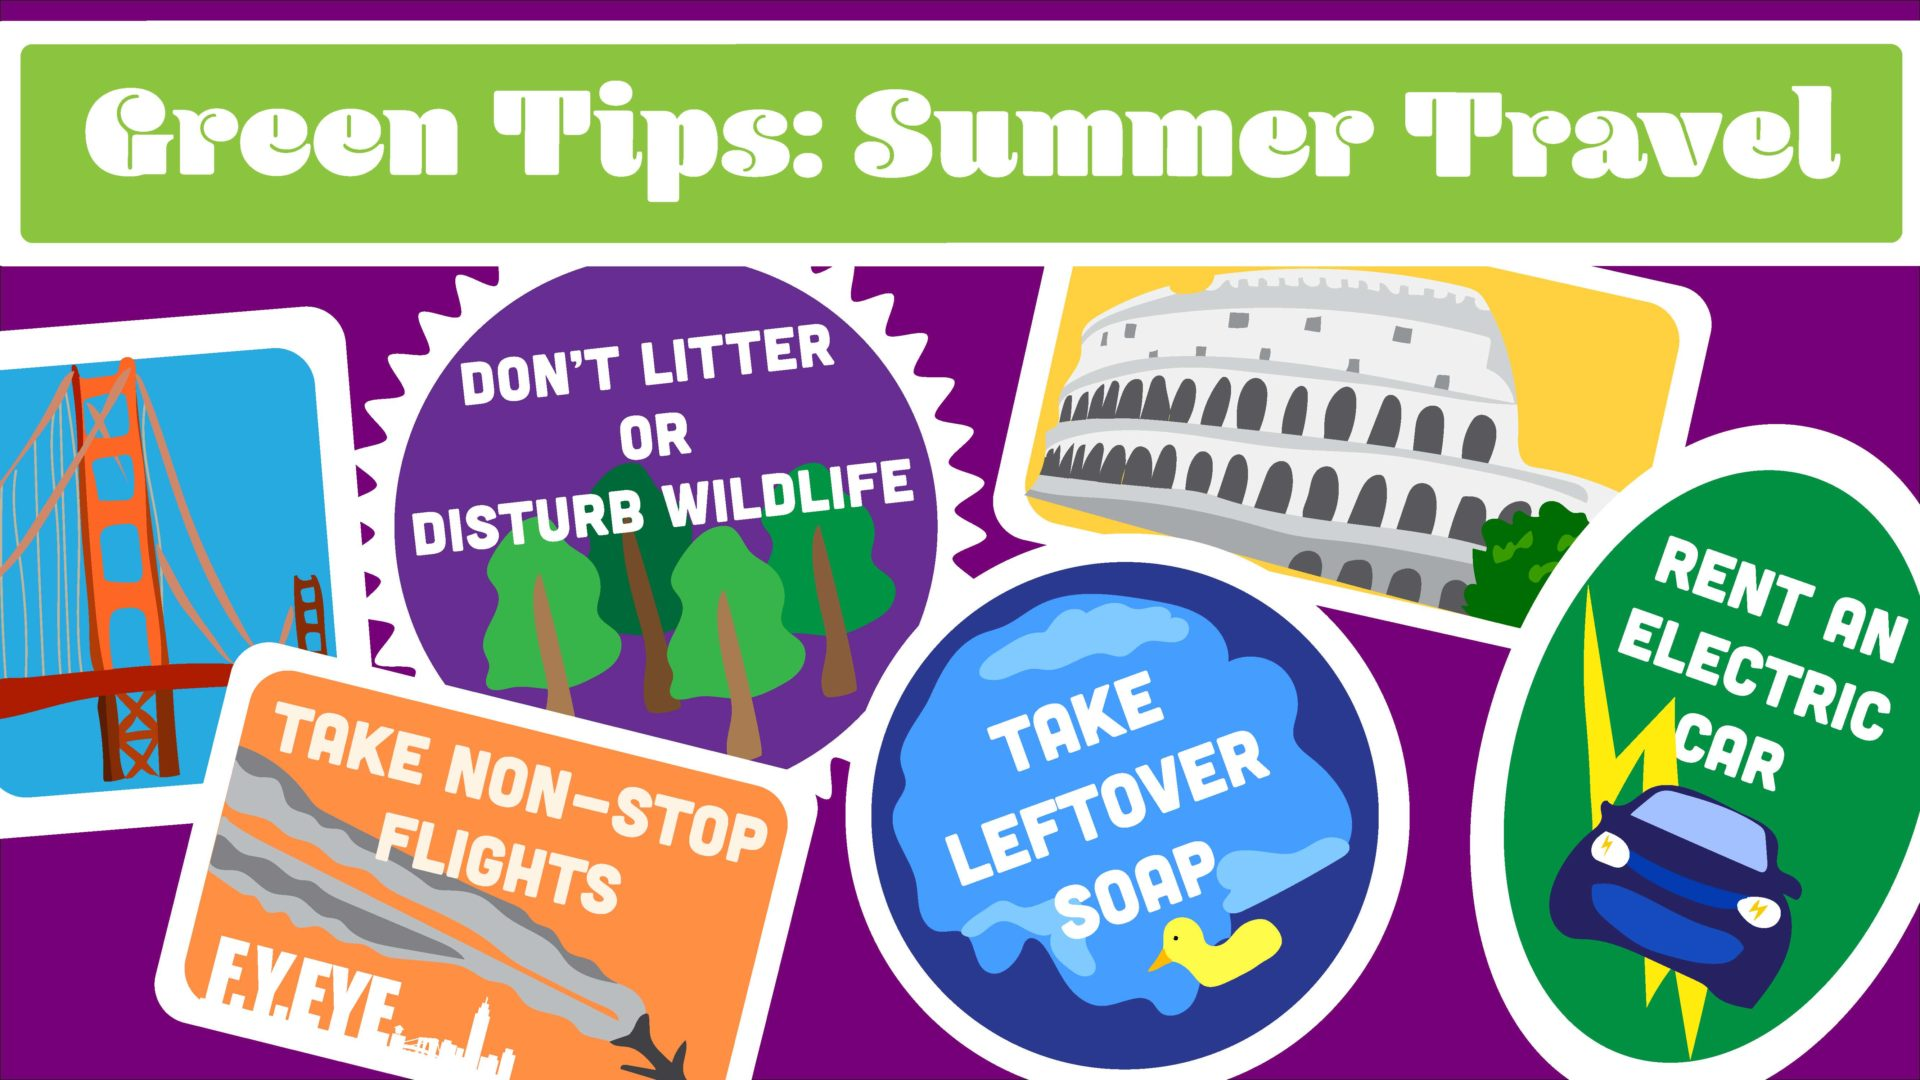 Green Tips for Summer Travel banner